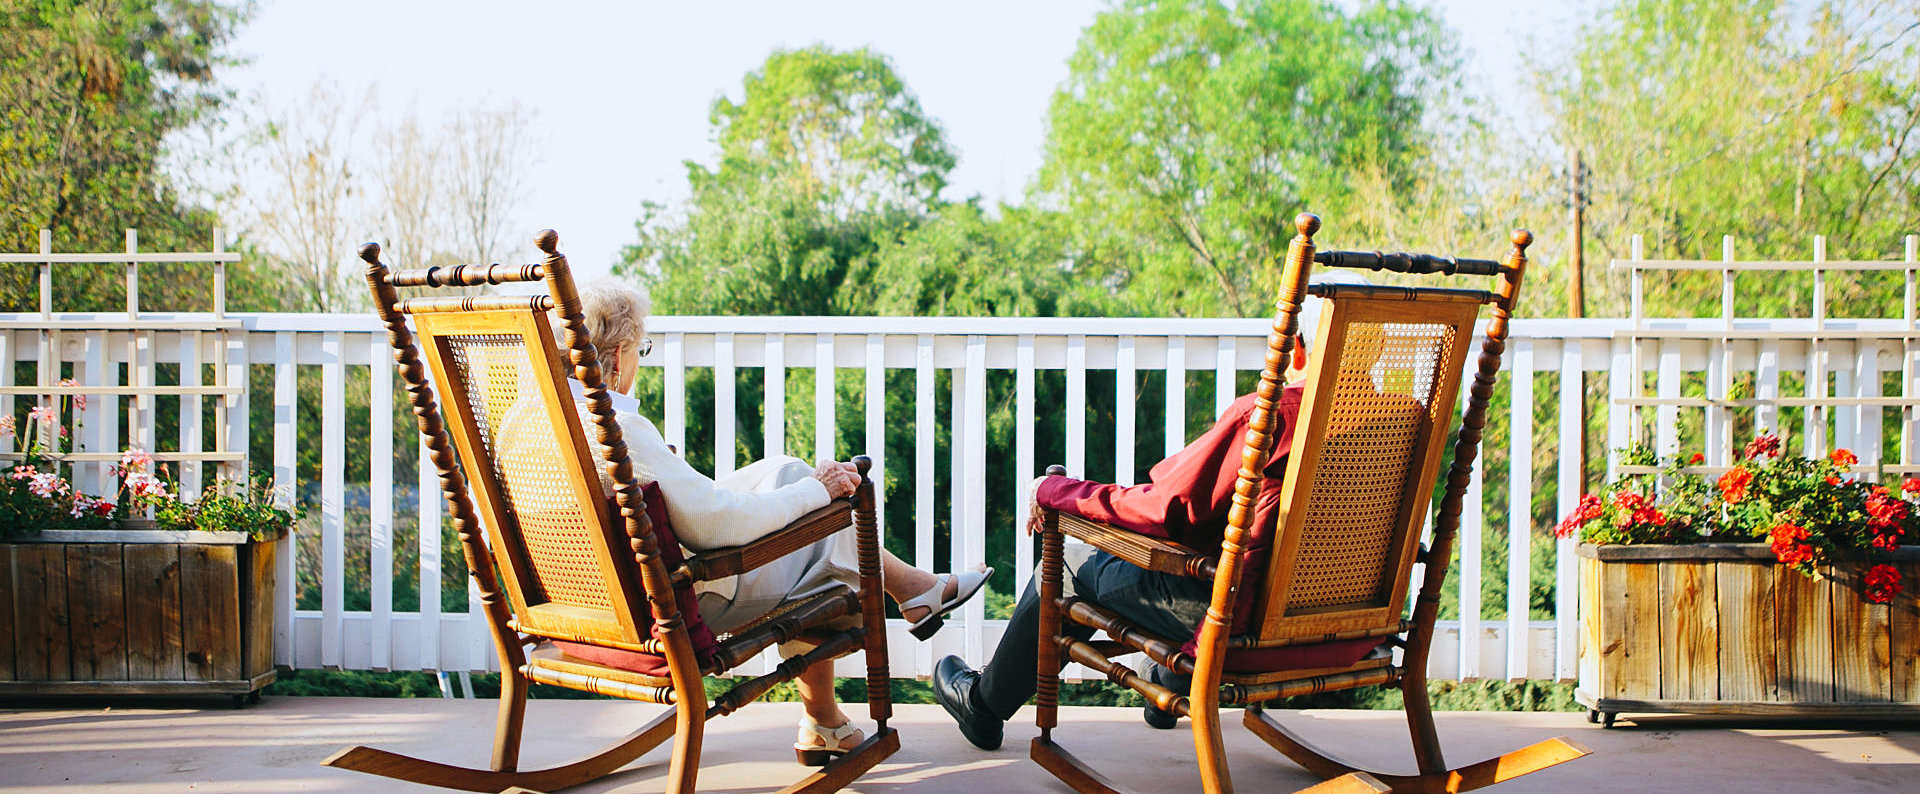 a porch with two seniors on a rocking chair